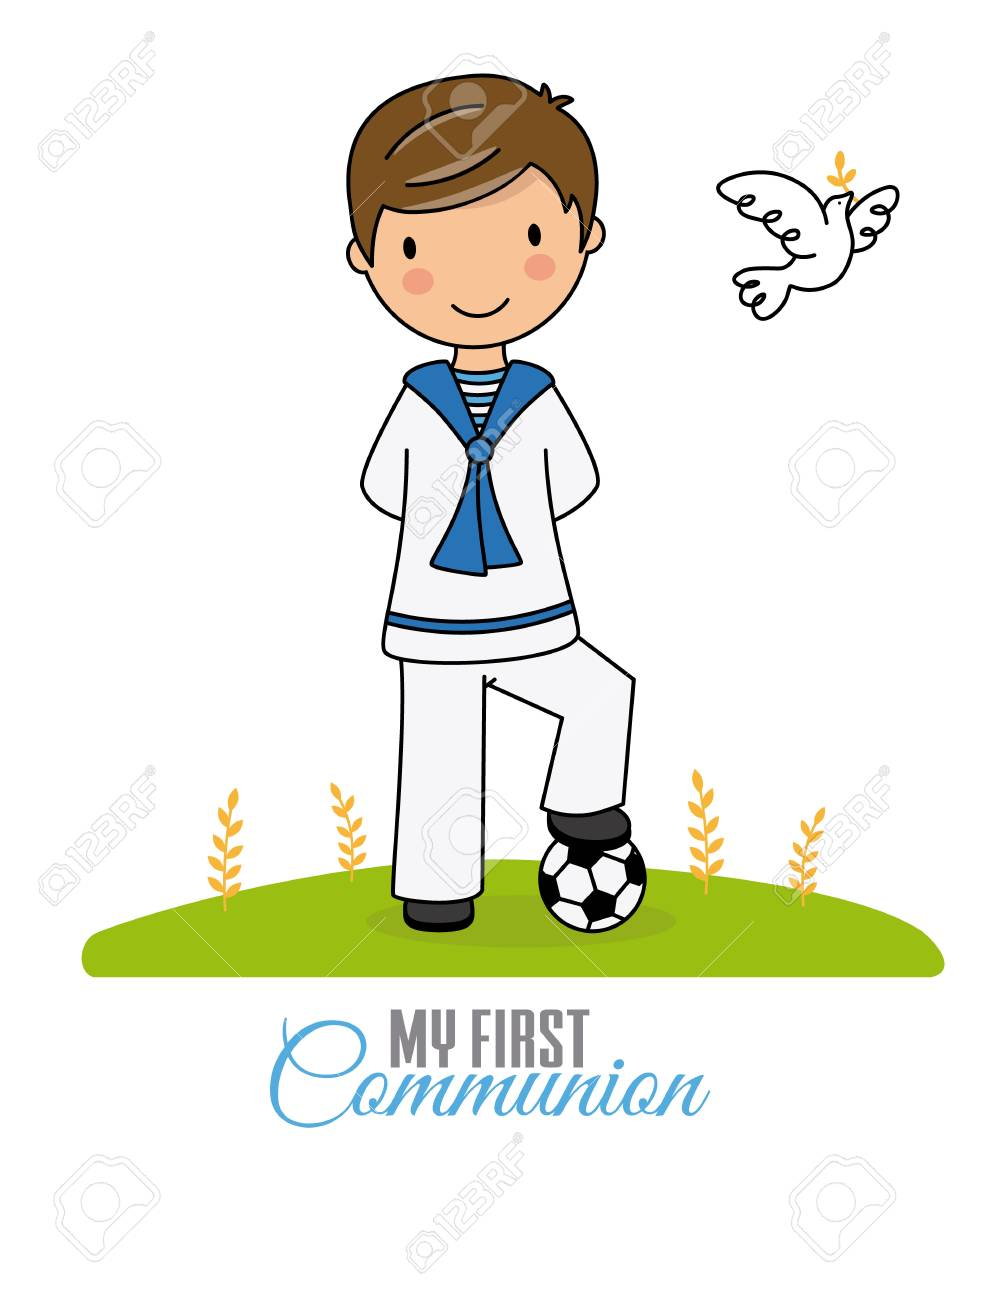 my first communion boy. Boy in communion costume and soccer ball - 112642203